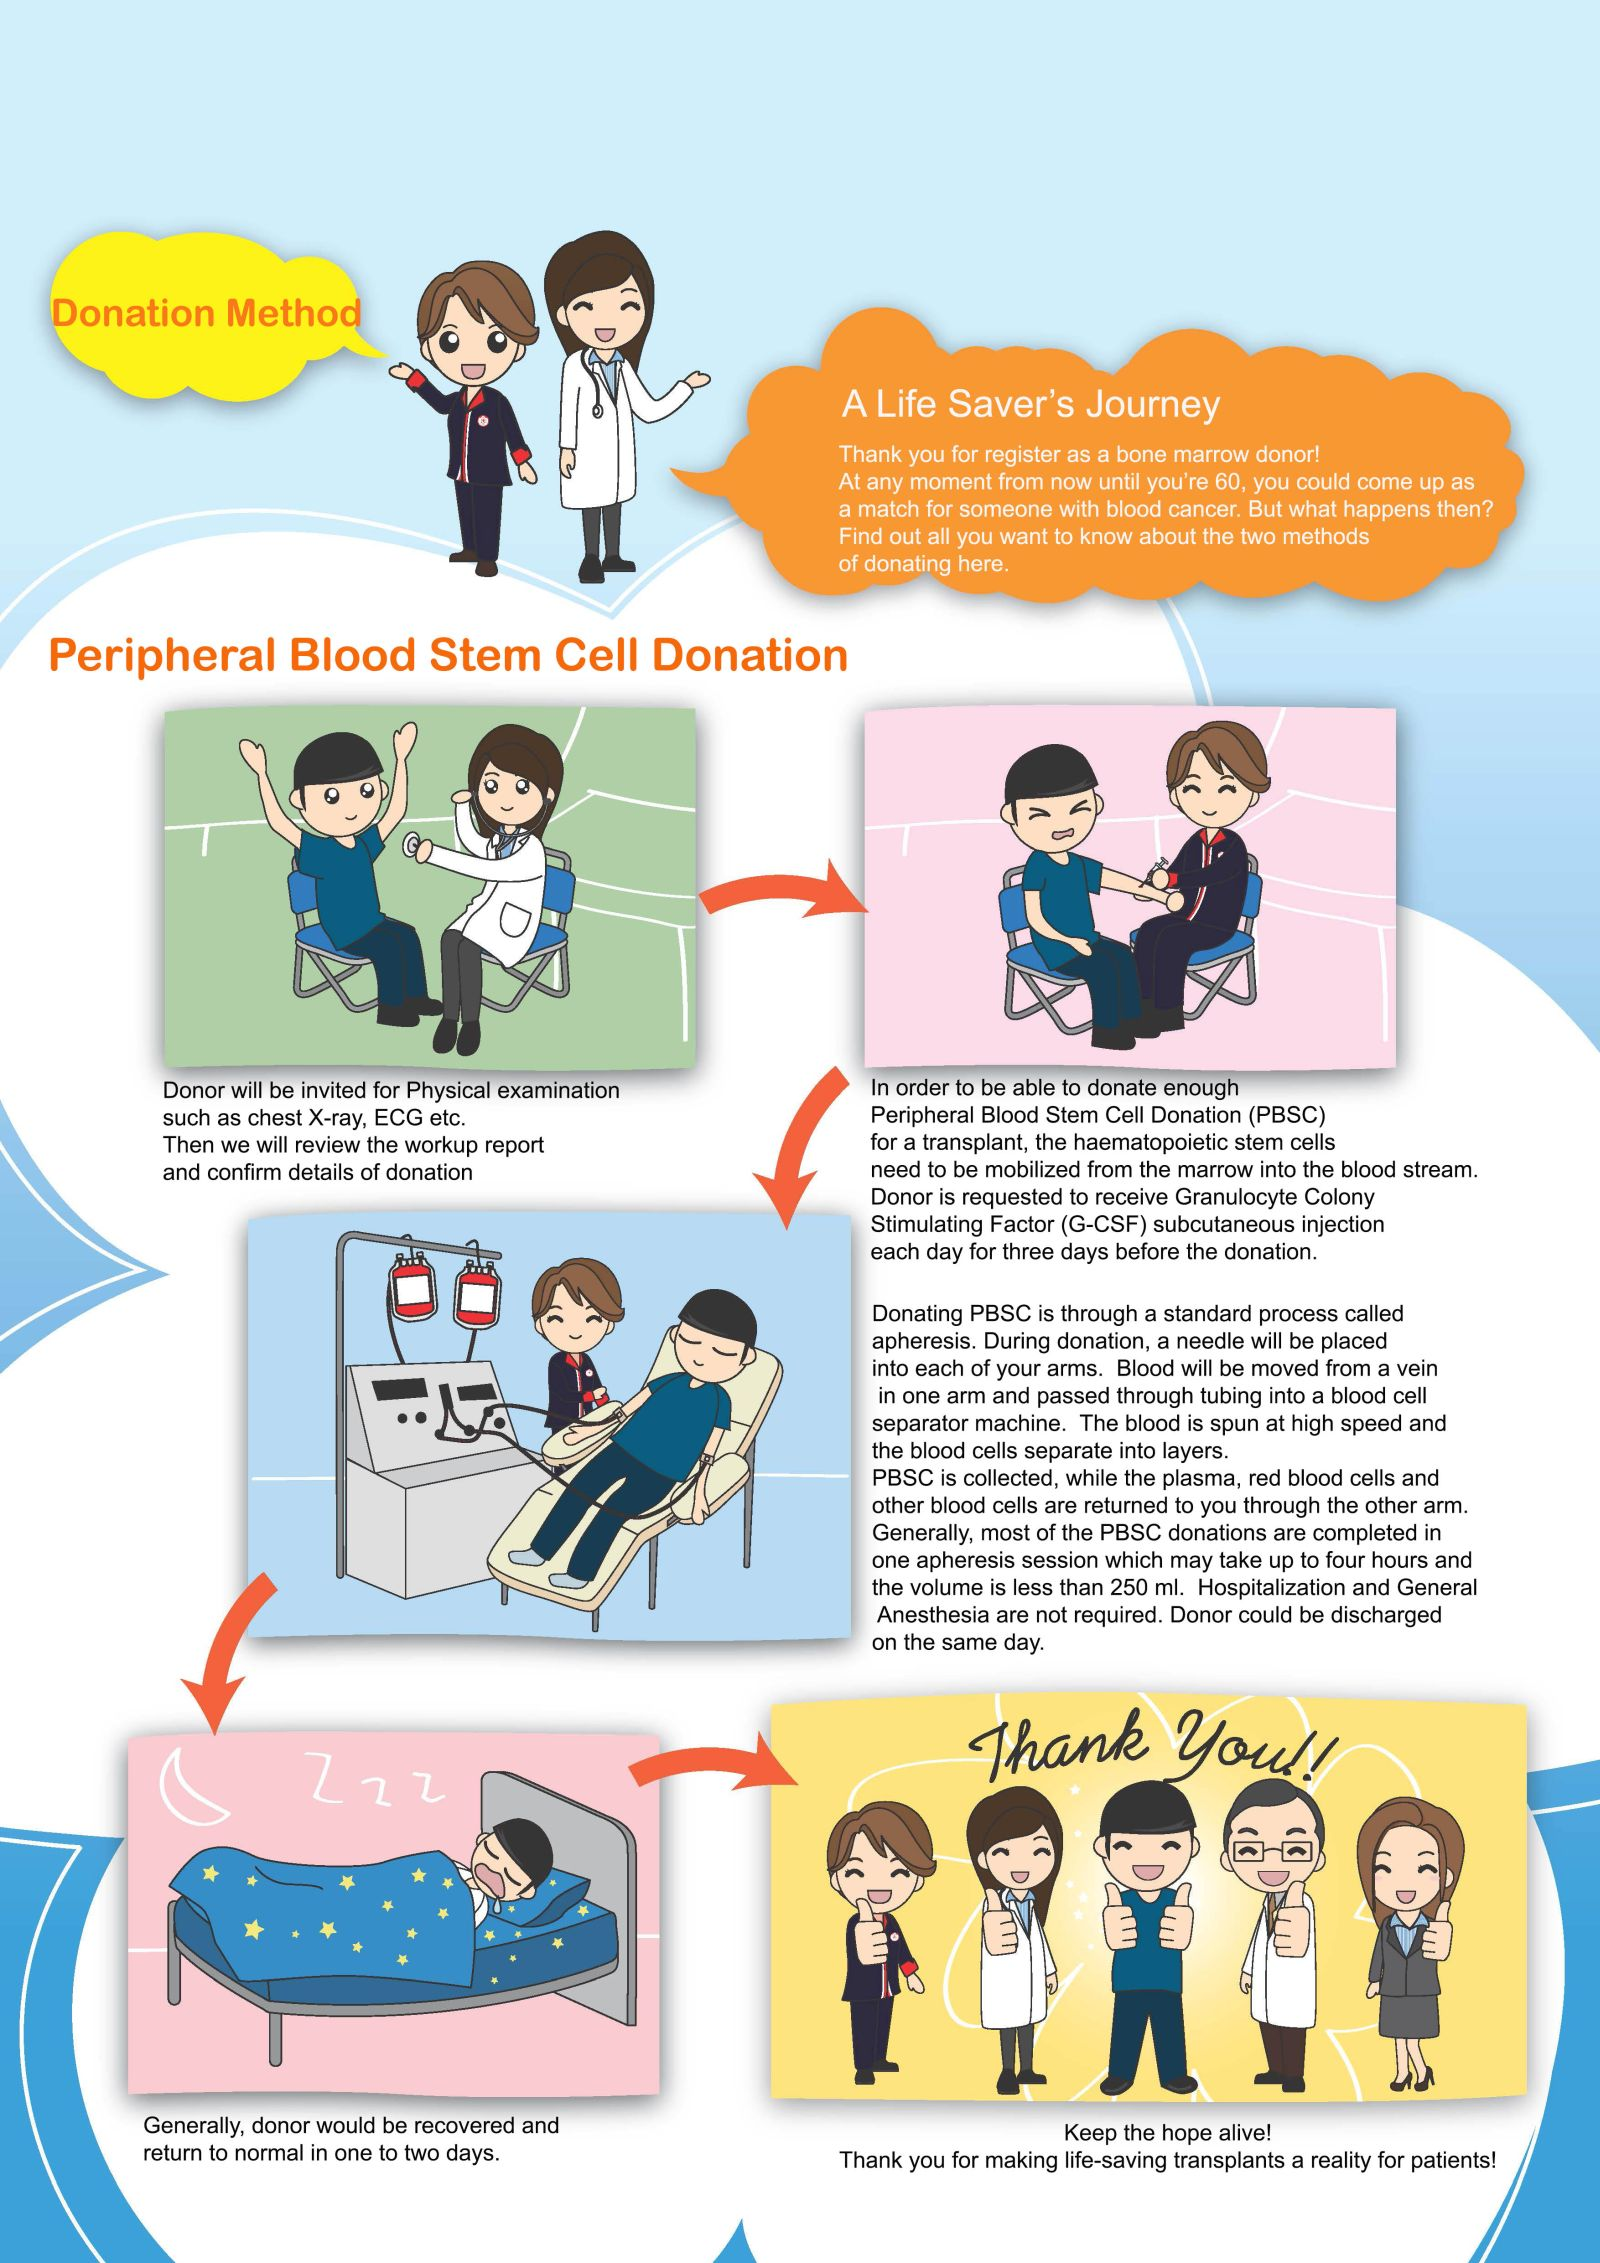 Image: Peripheral Blood Stem Cell Donation